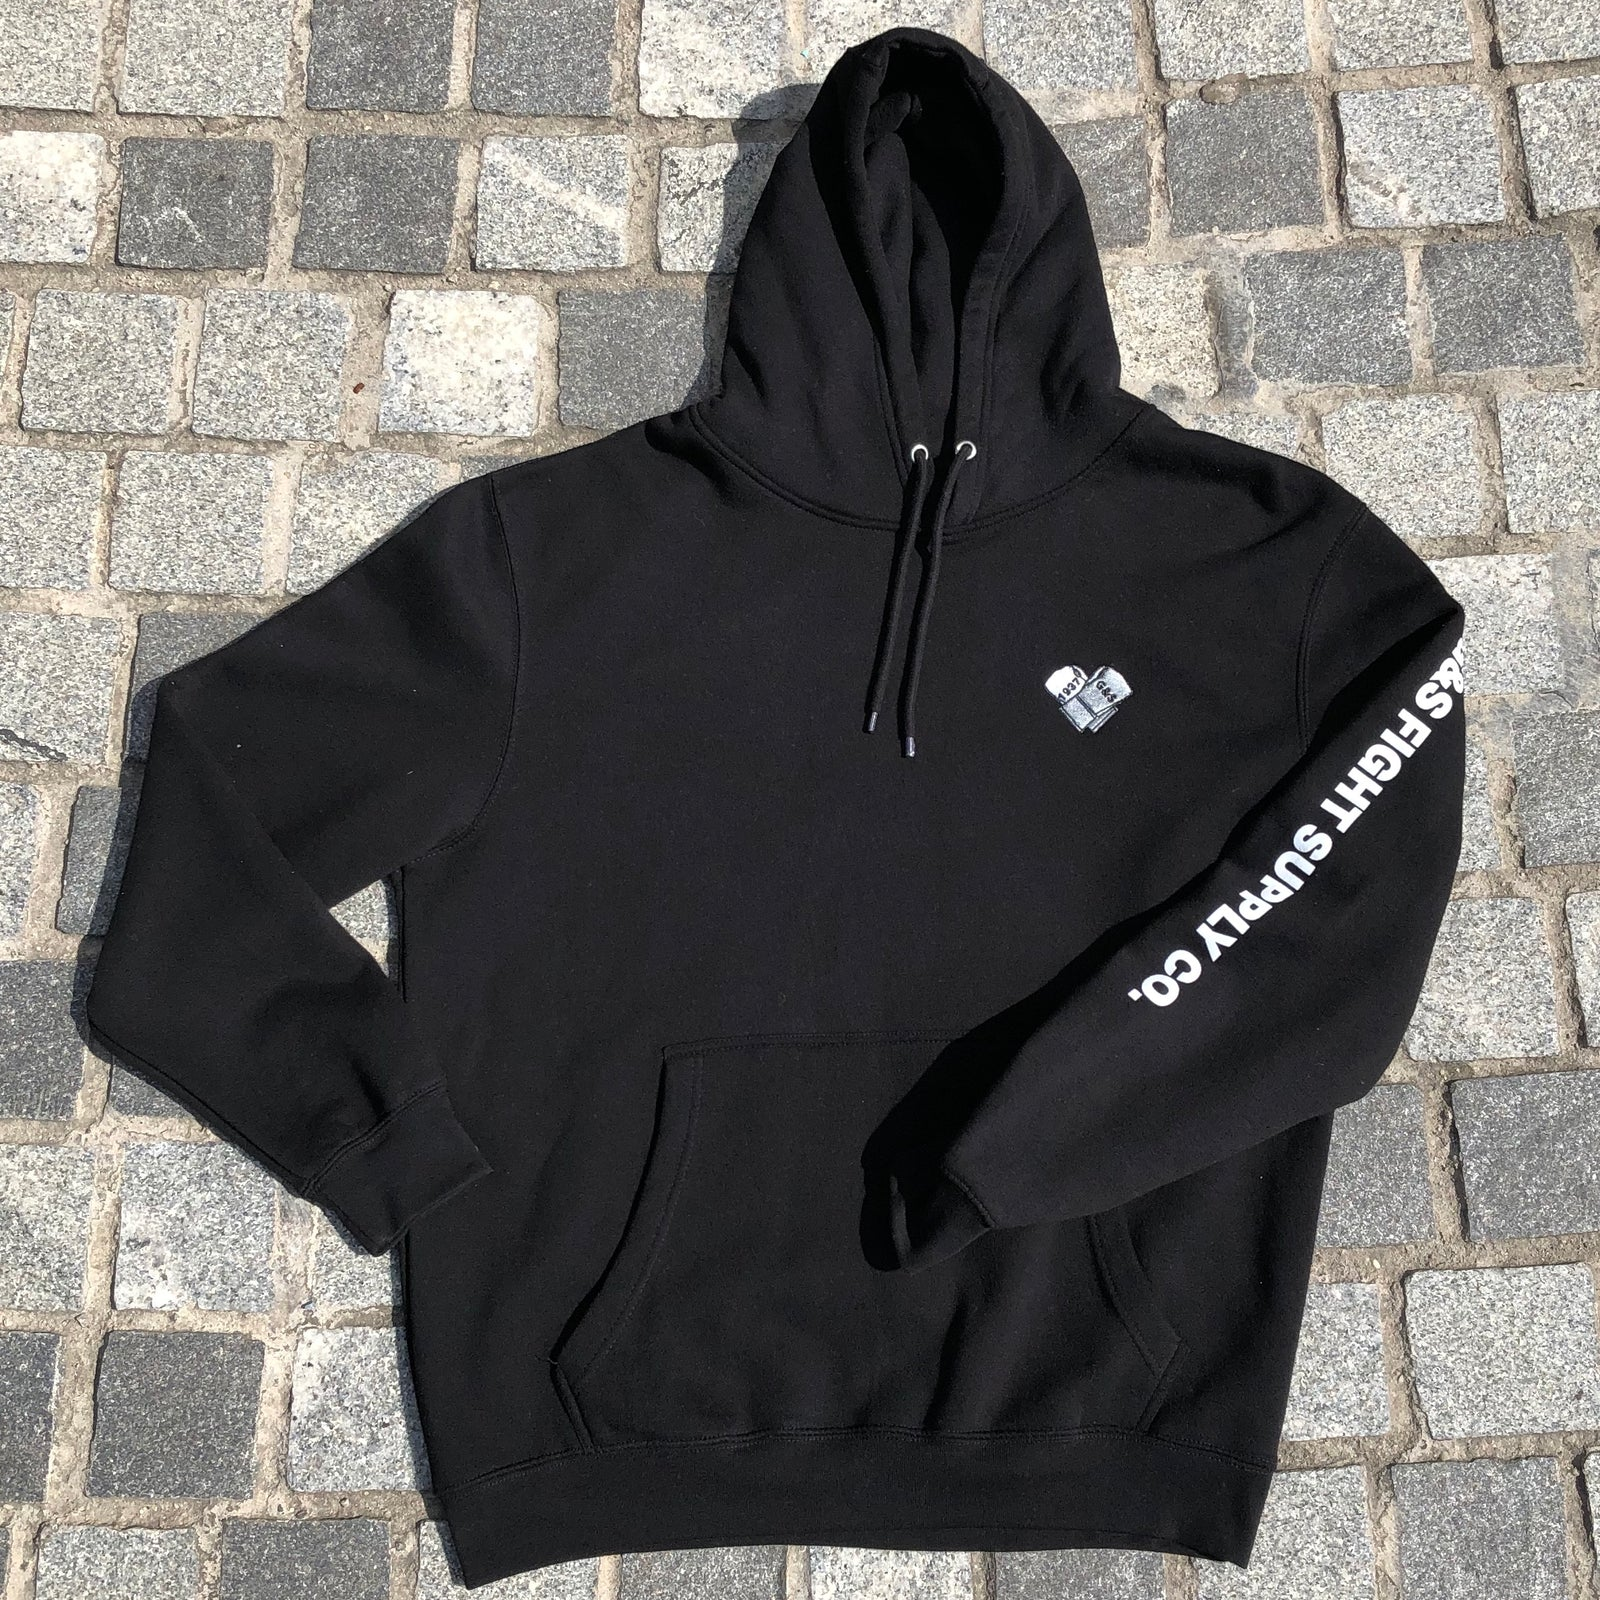 G&S Crossed Glove Embroidered Hoodie - Black